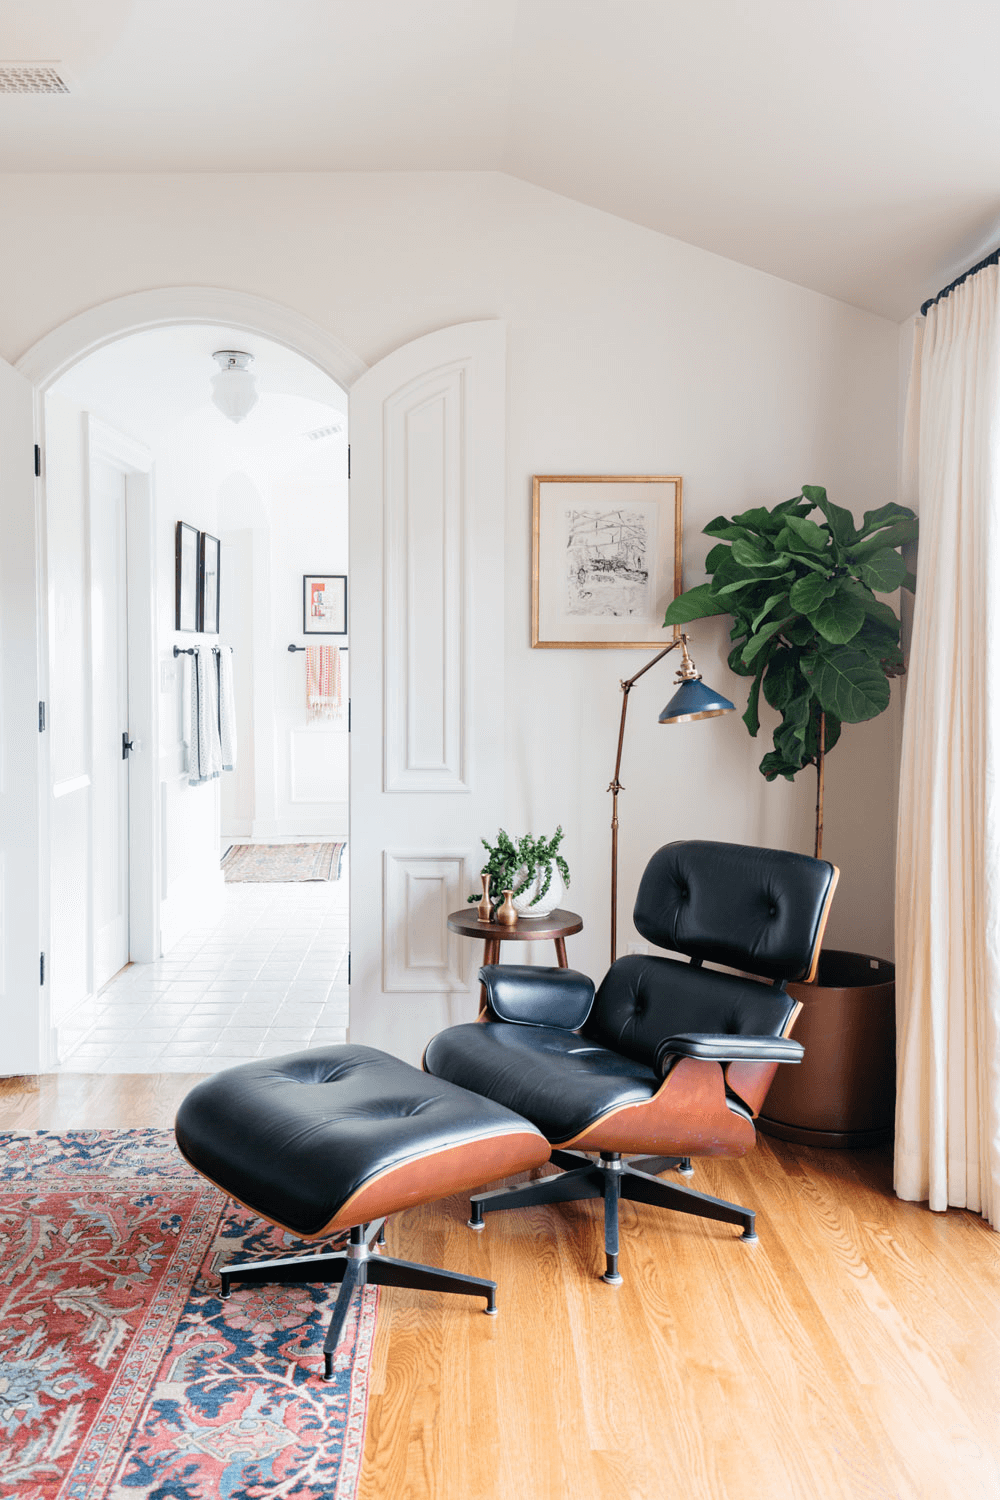 this is a Eames Lounge Chair and Ottoman was designed in 1956 by Charles and Ray Eames